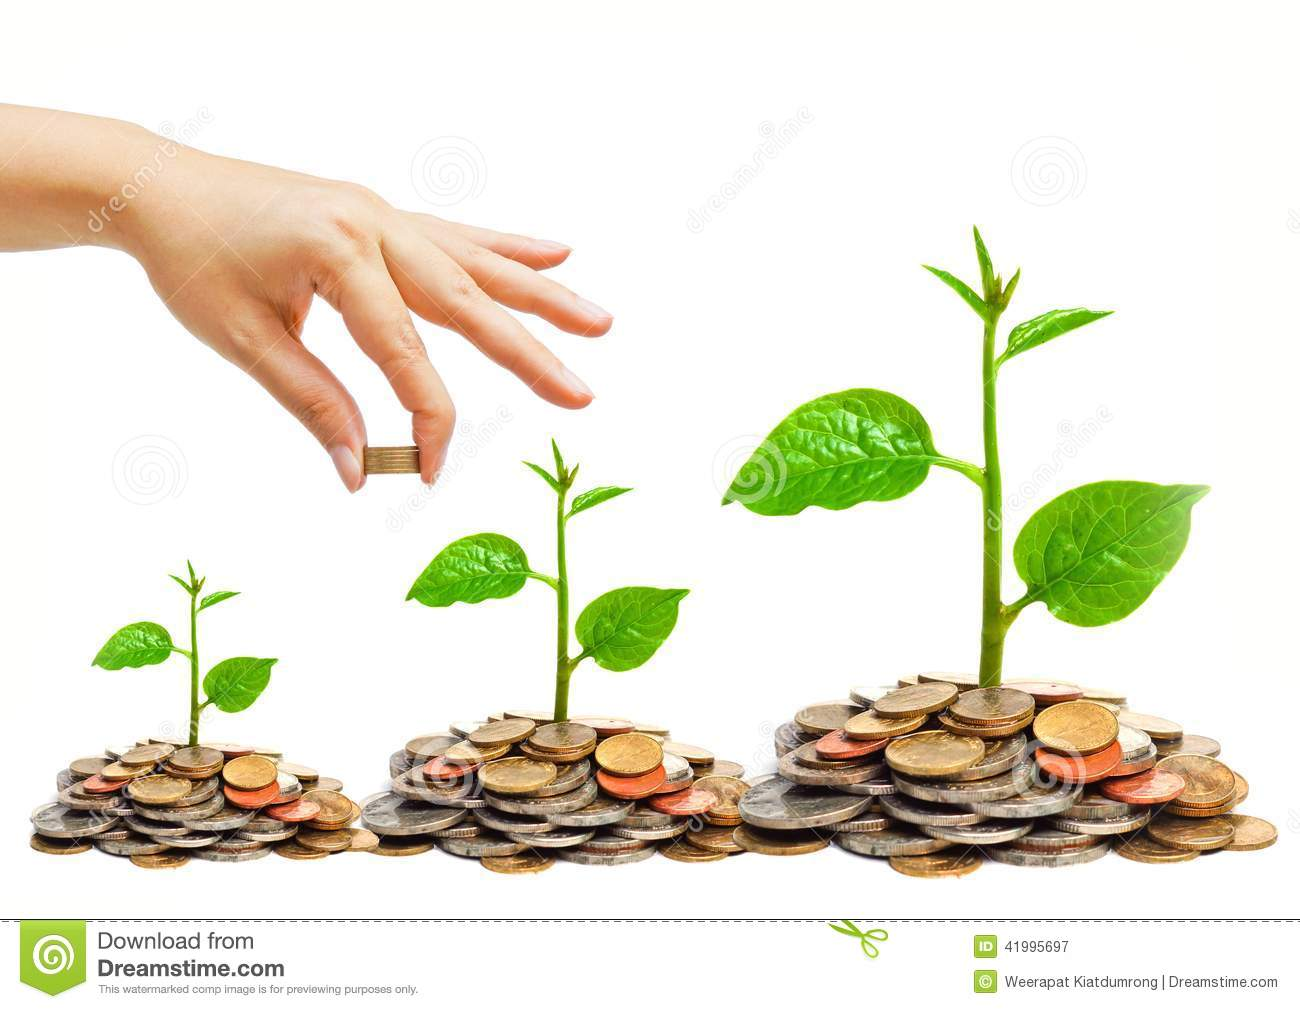 Tree growing on coins stock image image of green forestation 41995697 - Money saving tips in gardening ...